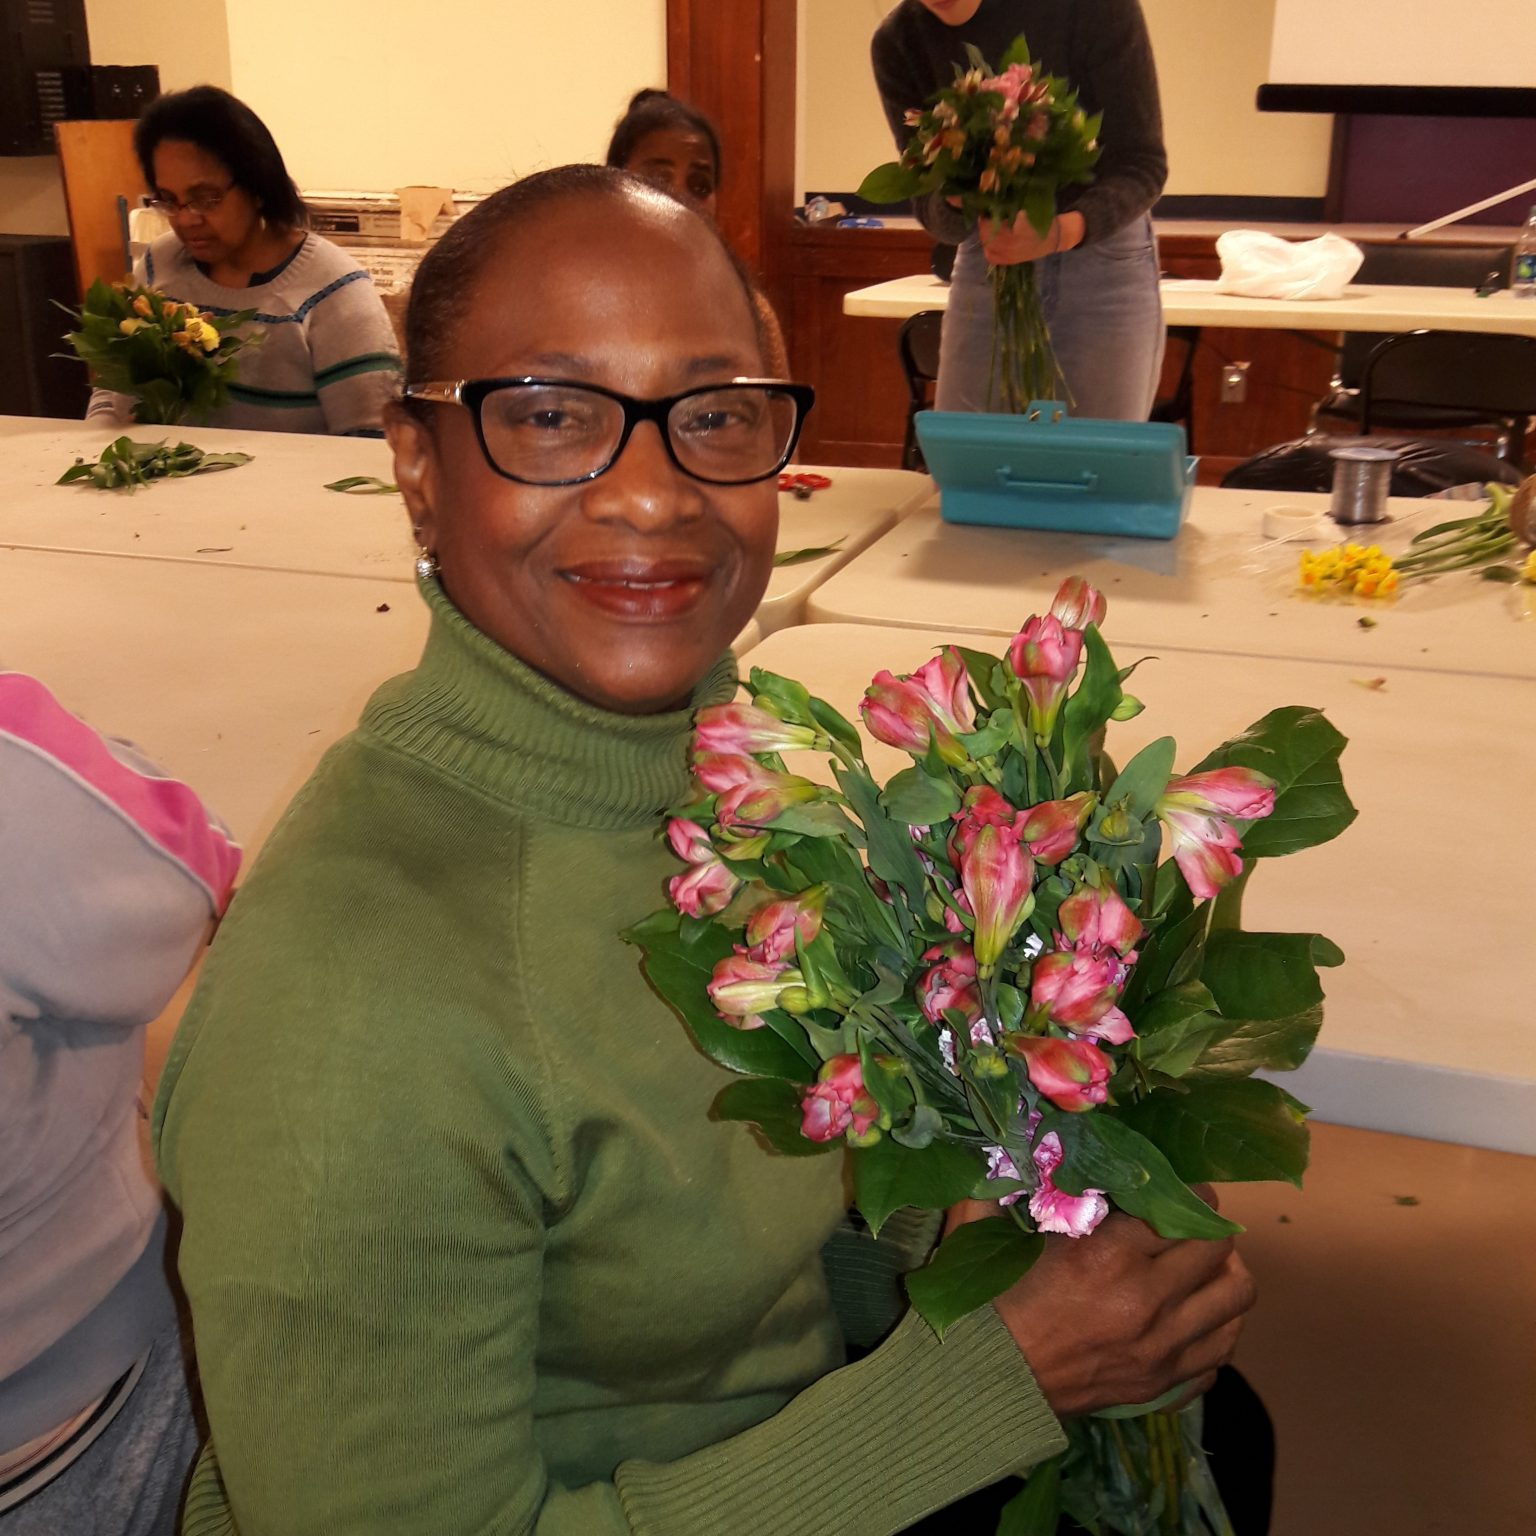 Senior Center - Bernandine G flower workshop - creating a beautiful bouquet of pink carnations